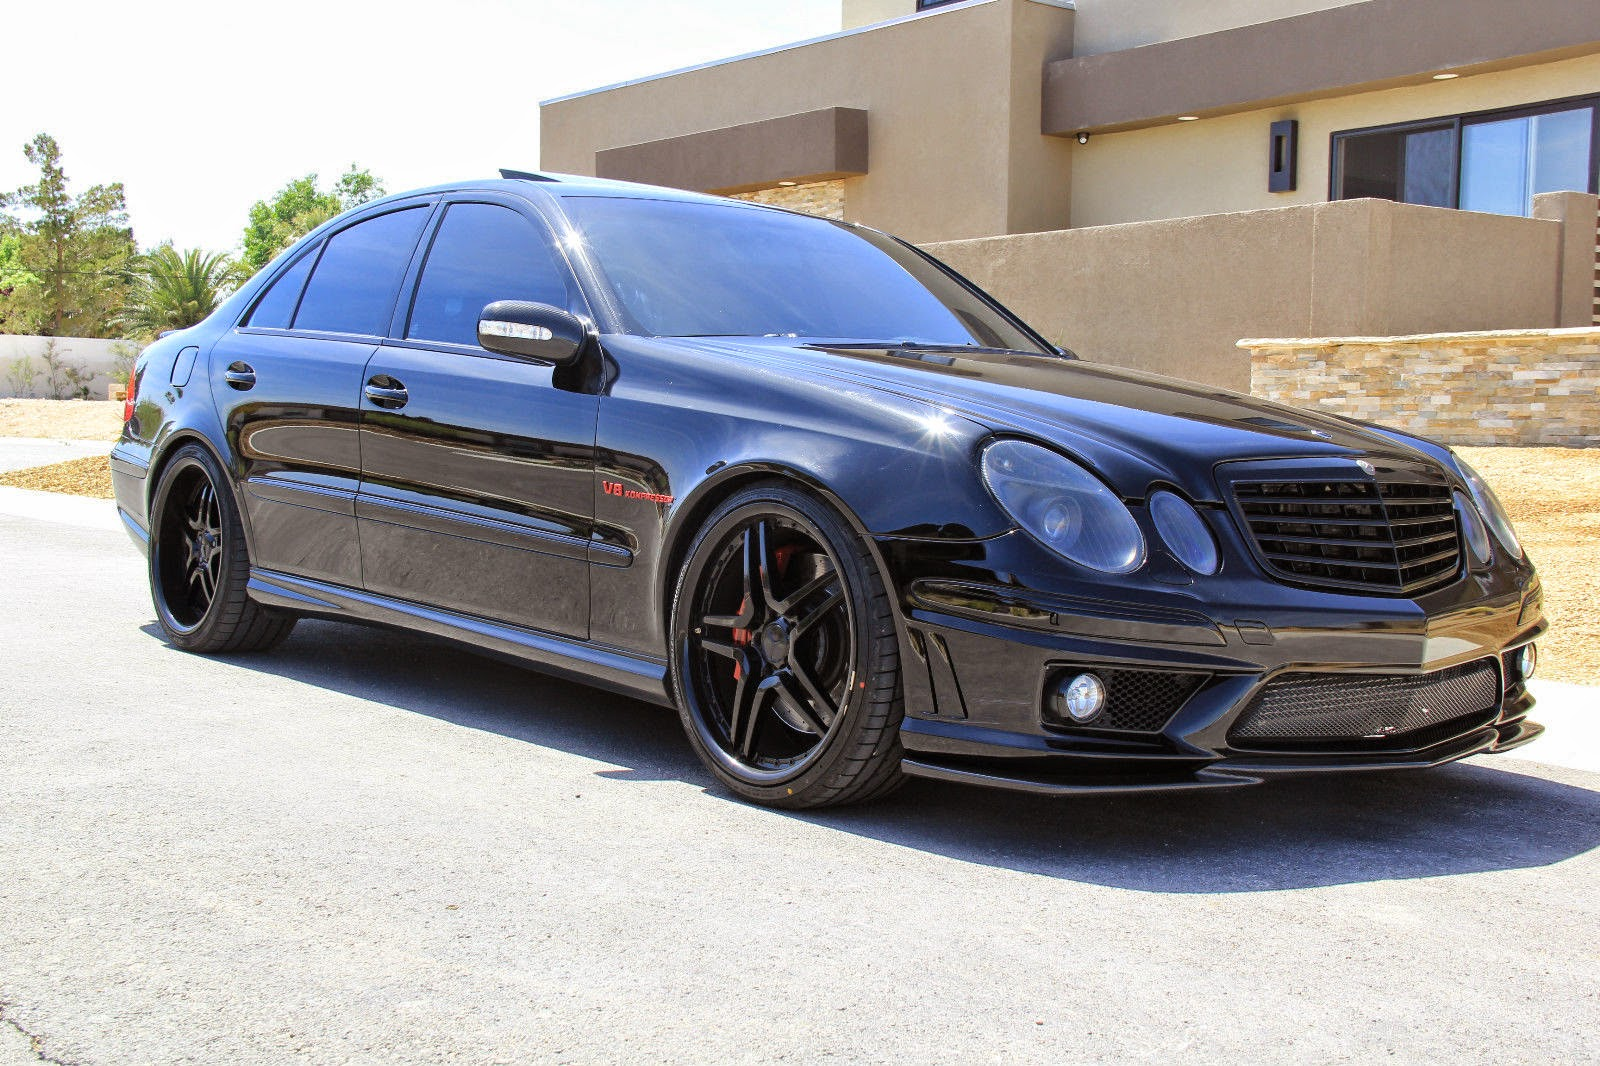 mercedes benz w211 e55 amg renntech shadowline benztuning. Black Bedroom Furniture Sets. Home Design Ideas